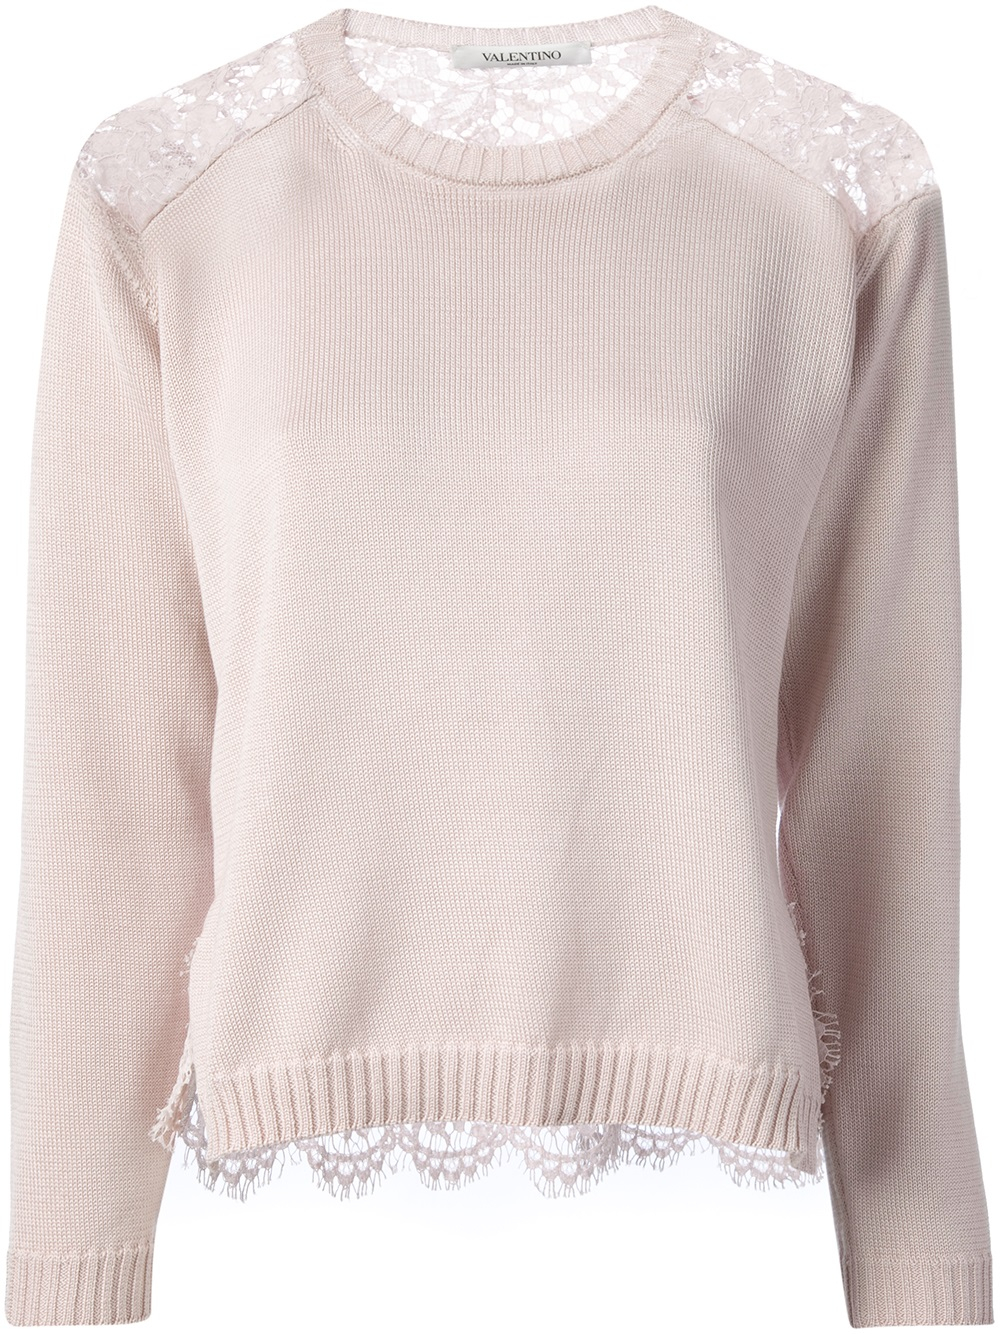 Valentino Lace Panel Sweater in Purple | Lyst